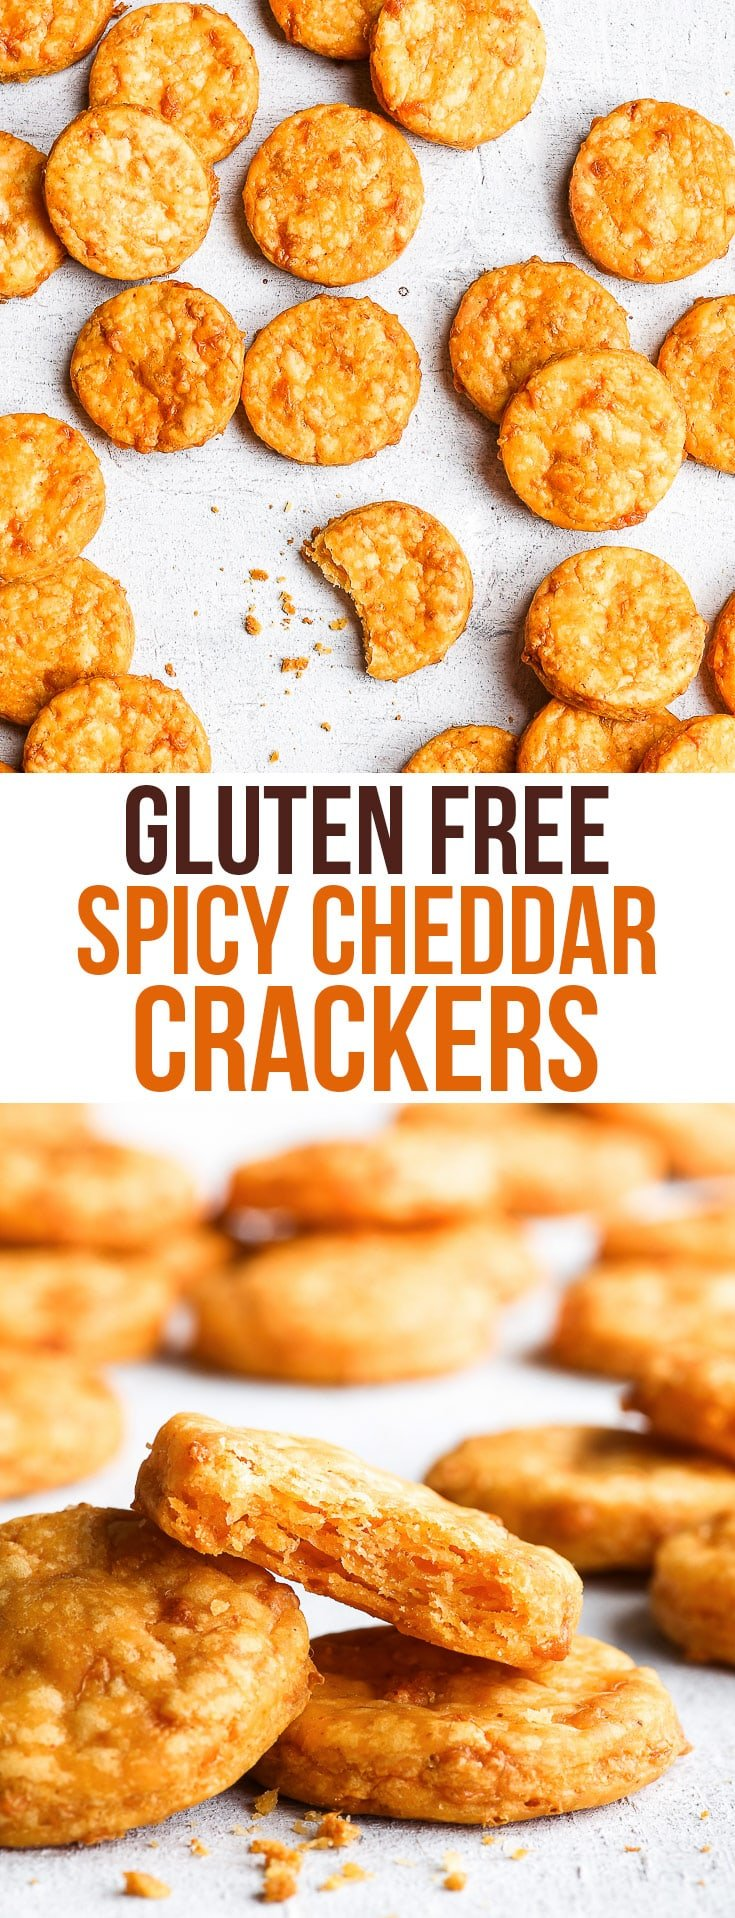 Gluten Free Spicy Cheddar Crackers {gluten, egg, nut, soy & refined sugar free} - Pure flaky, buttery, spicy, cheesy goodness – these gluten free crackers are what snacking dreams are made of. With the slight heat from the chilli and smoked paprika, and all the cheesy deliciousness from the cheddar, what's not to love about these spicy cheddar crackers?! The perfect quick gluten free snack recipe! #snacks #glutenfree #recipe #cheese #food